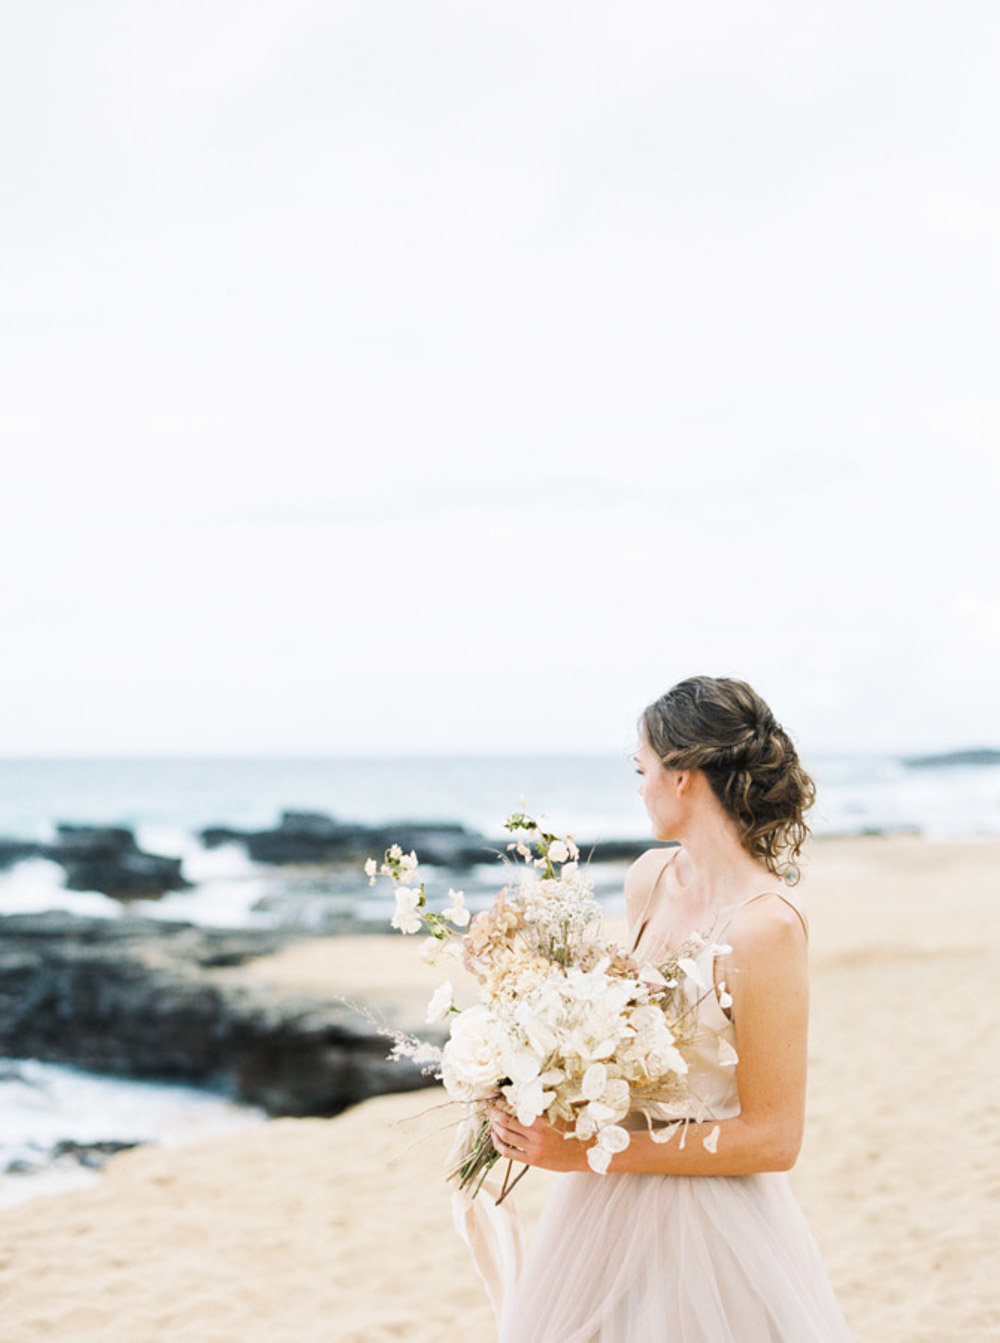 Hawaii Destination Wedding Photographer Sheri McMahon - Hawaii Beach Elopement-00007